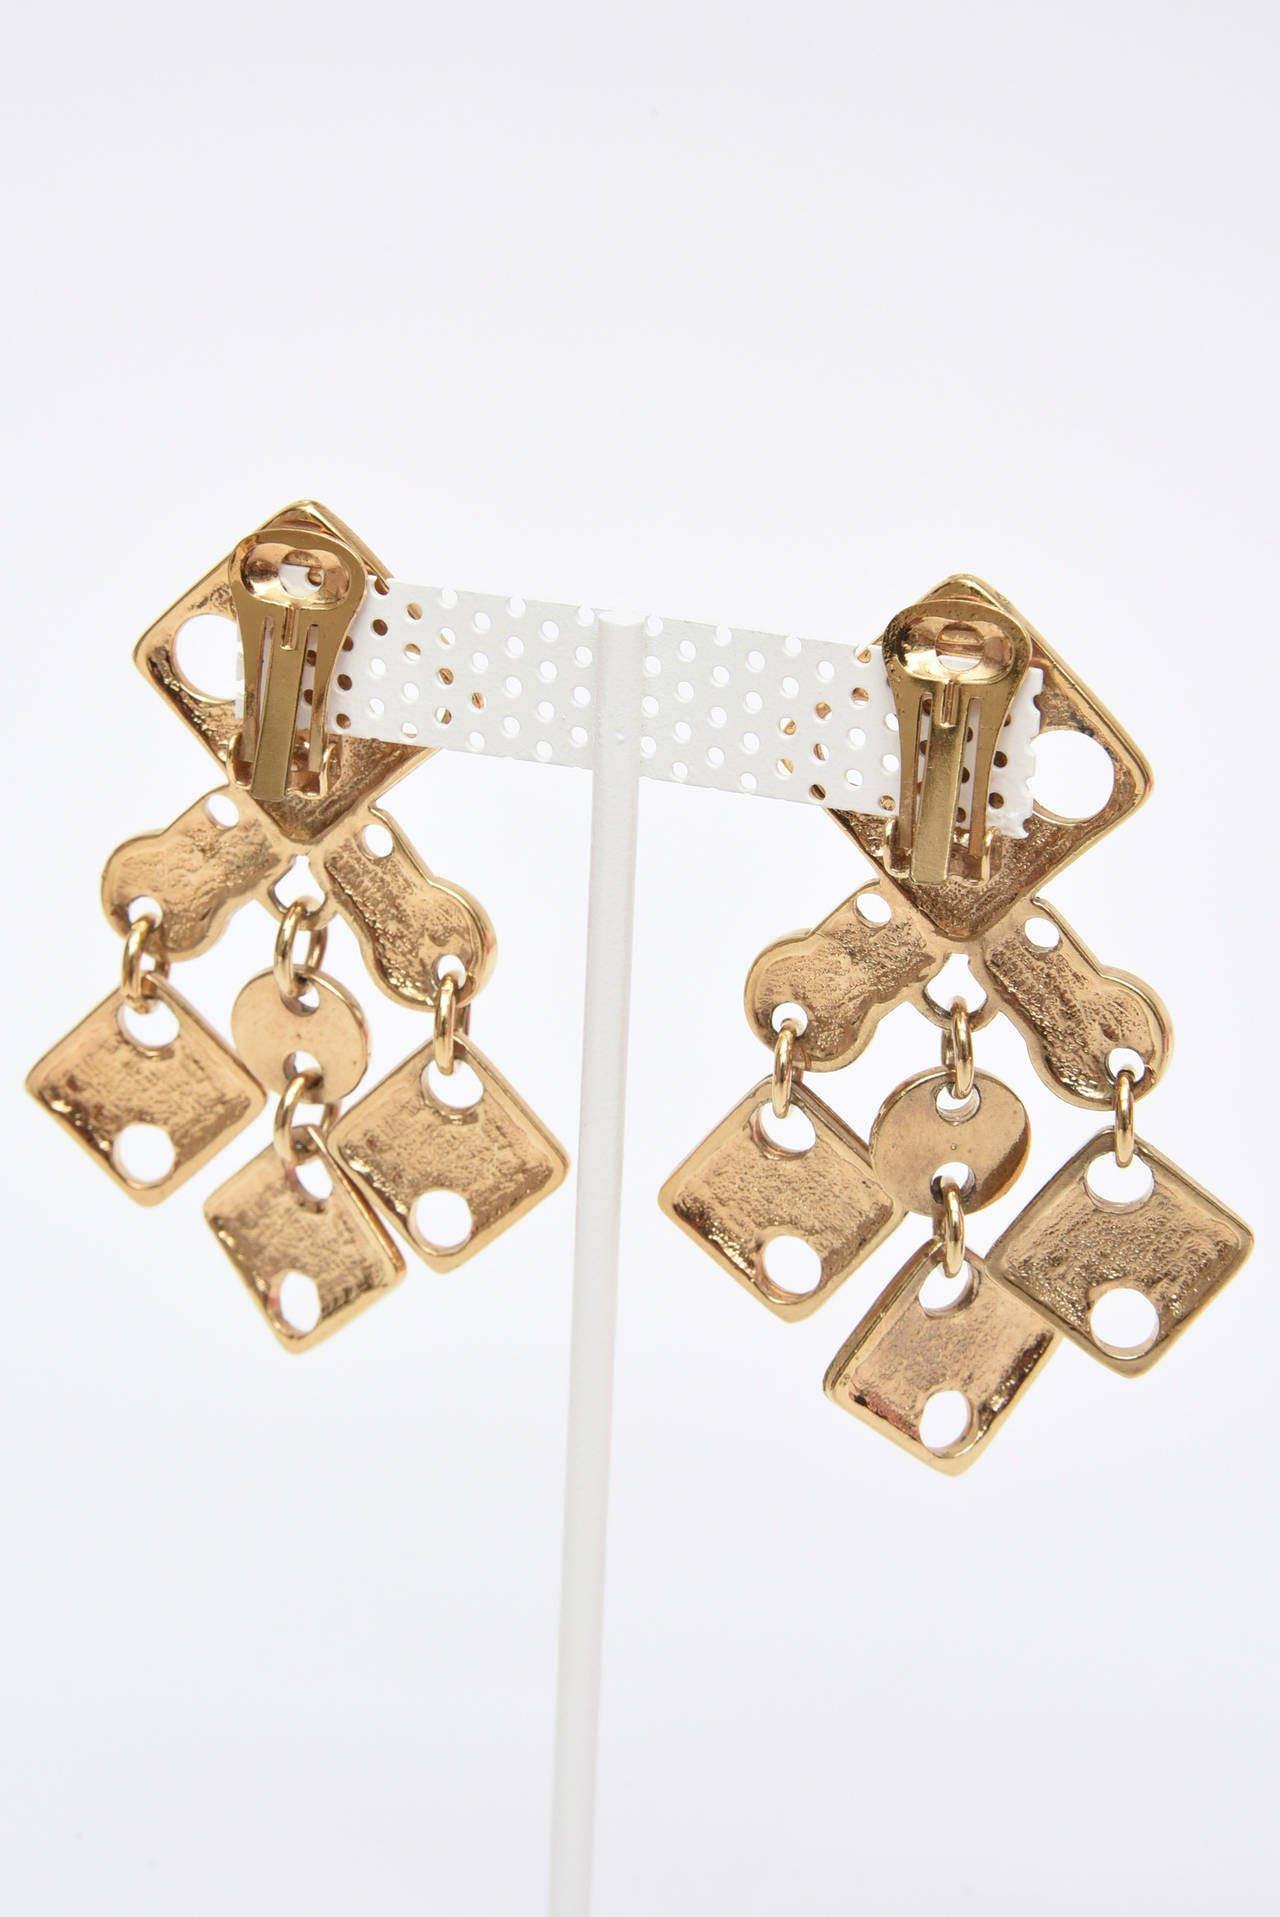 These fabulous and amazing signed French Paco Rabanne modernist dangle sculptural earrings are so au courant now as they were then in the 60's. The  geometric cutout forms and angles will forever be in stye. They are gold plated brass and have some